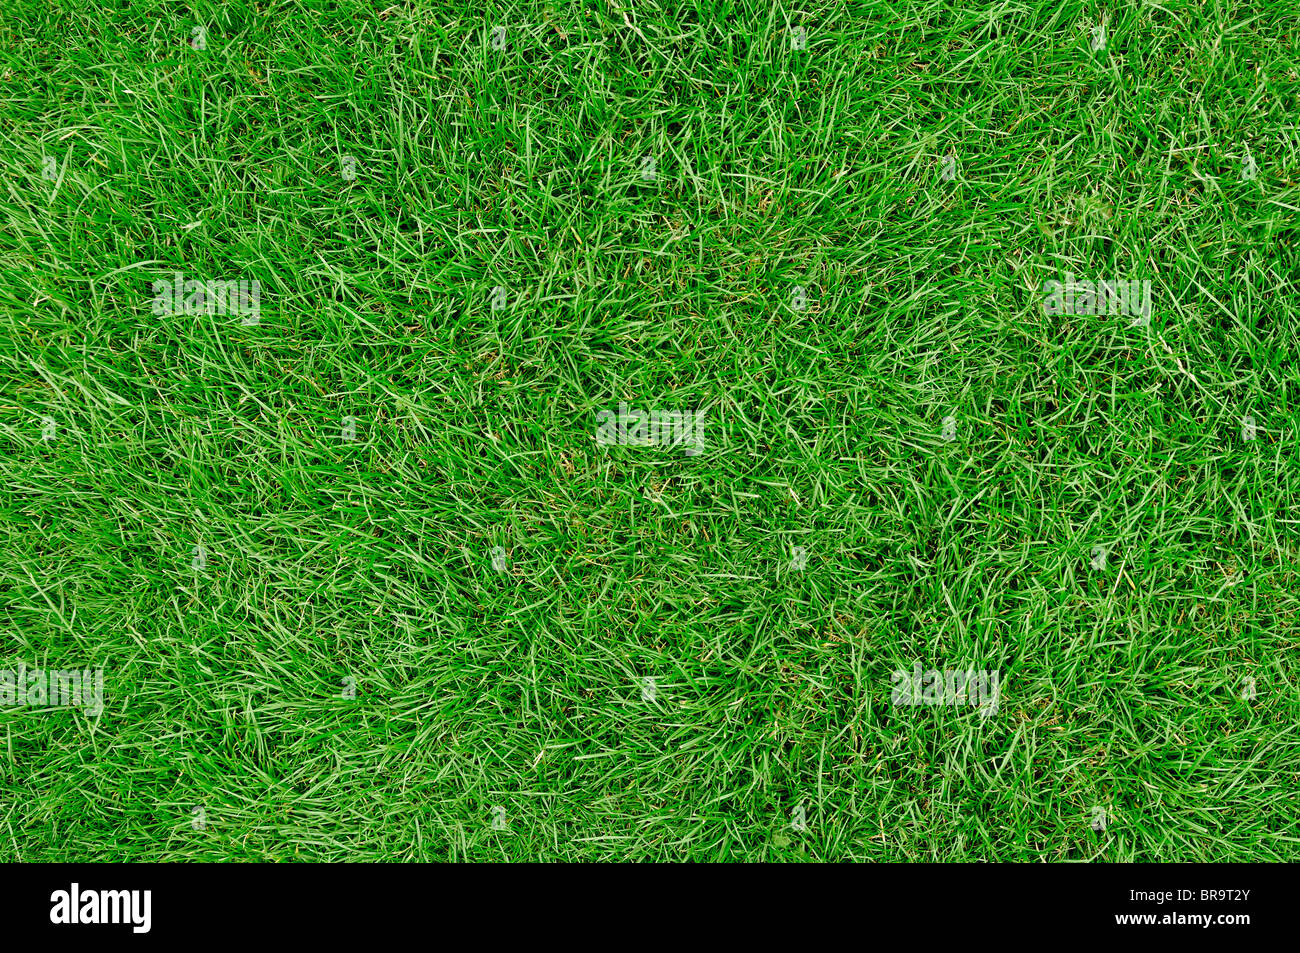 Grass Lawn, Close Up. - Stock Image